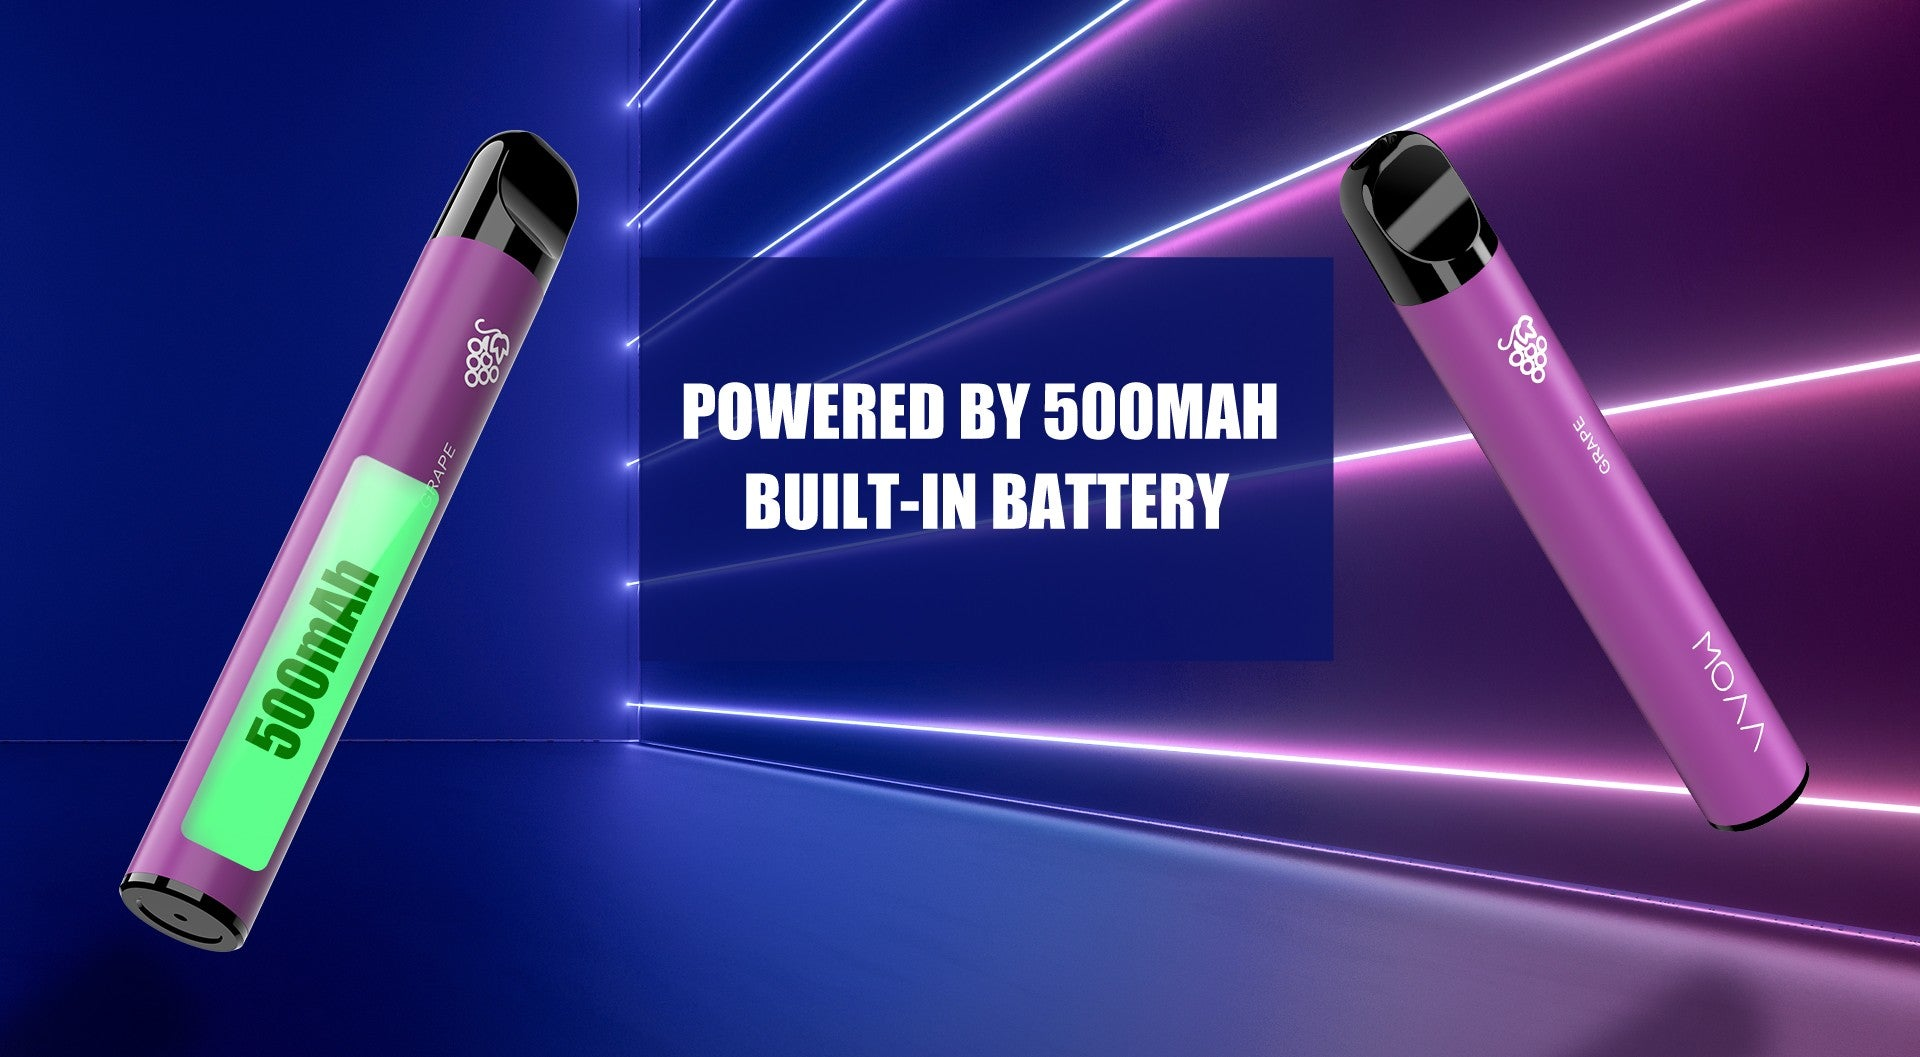 A 500mAh battery is fitted inside